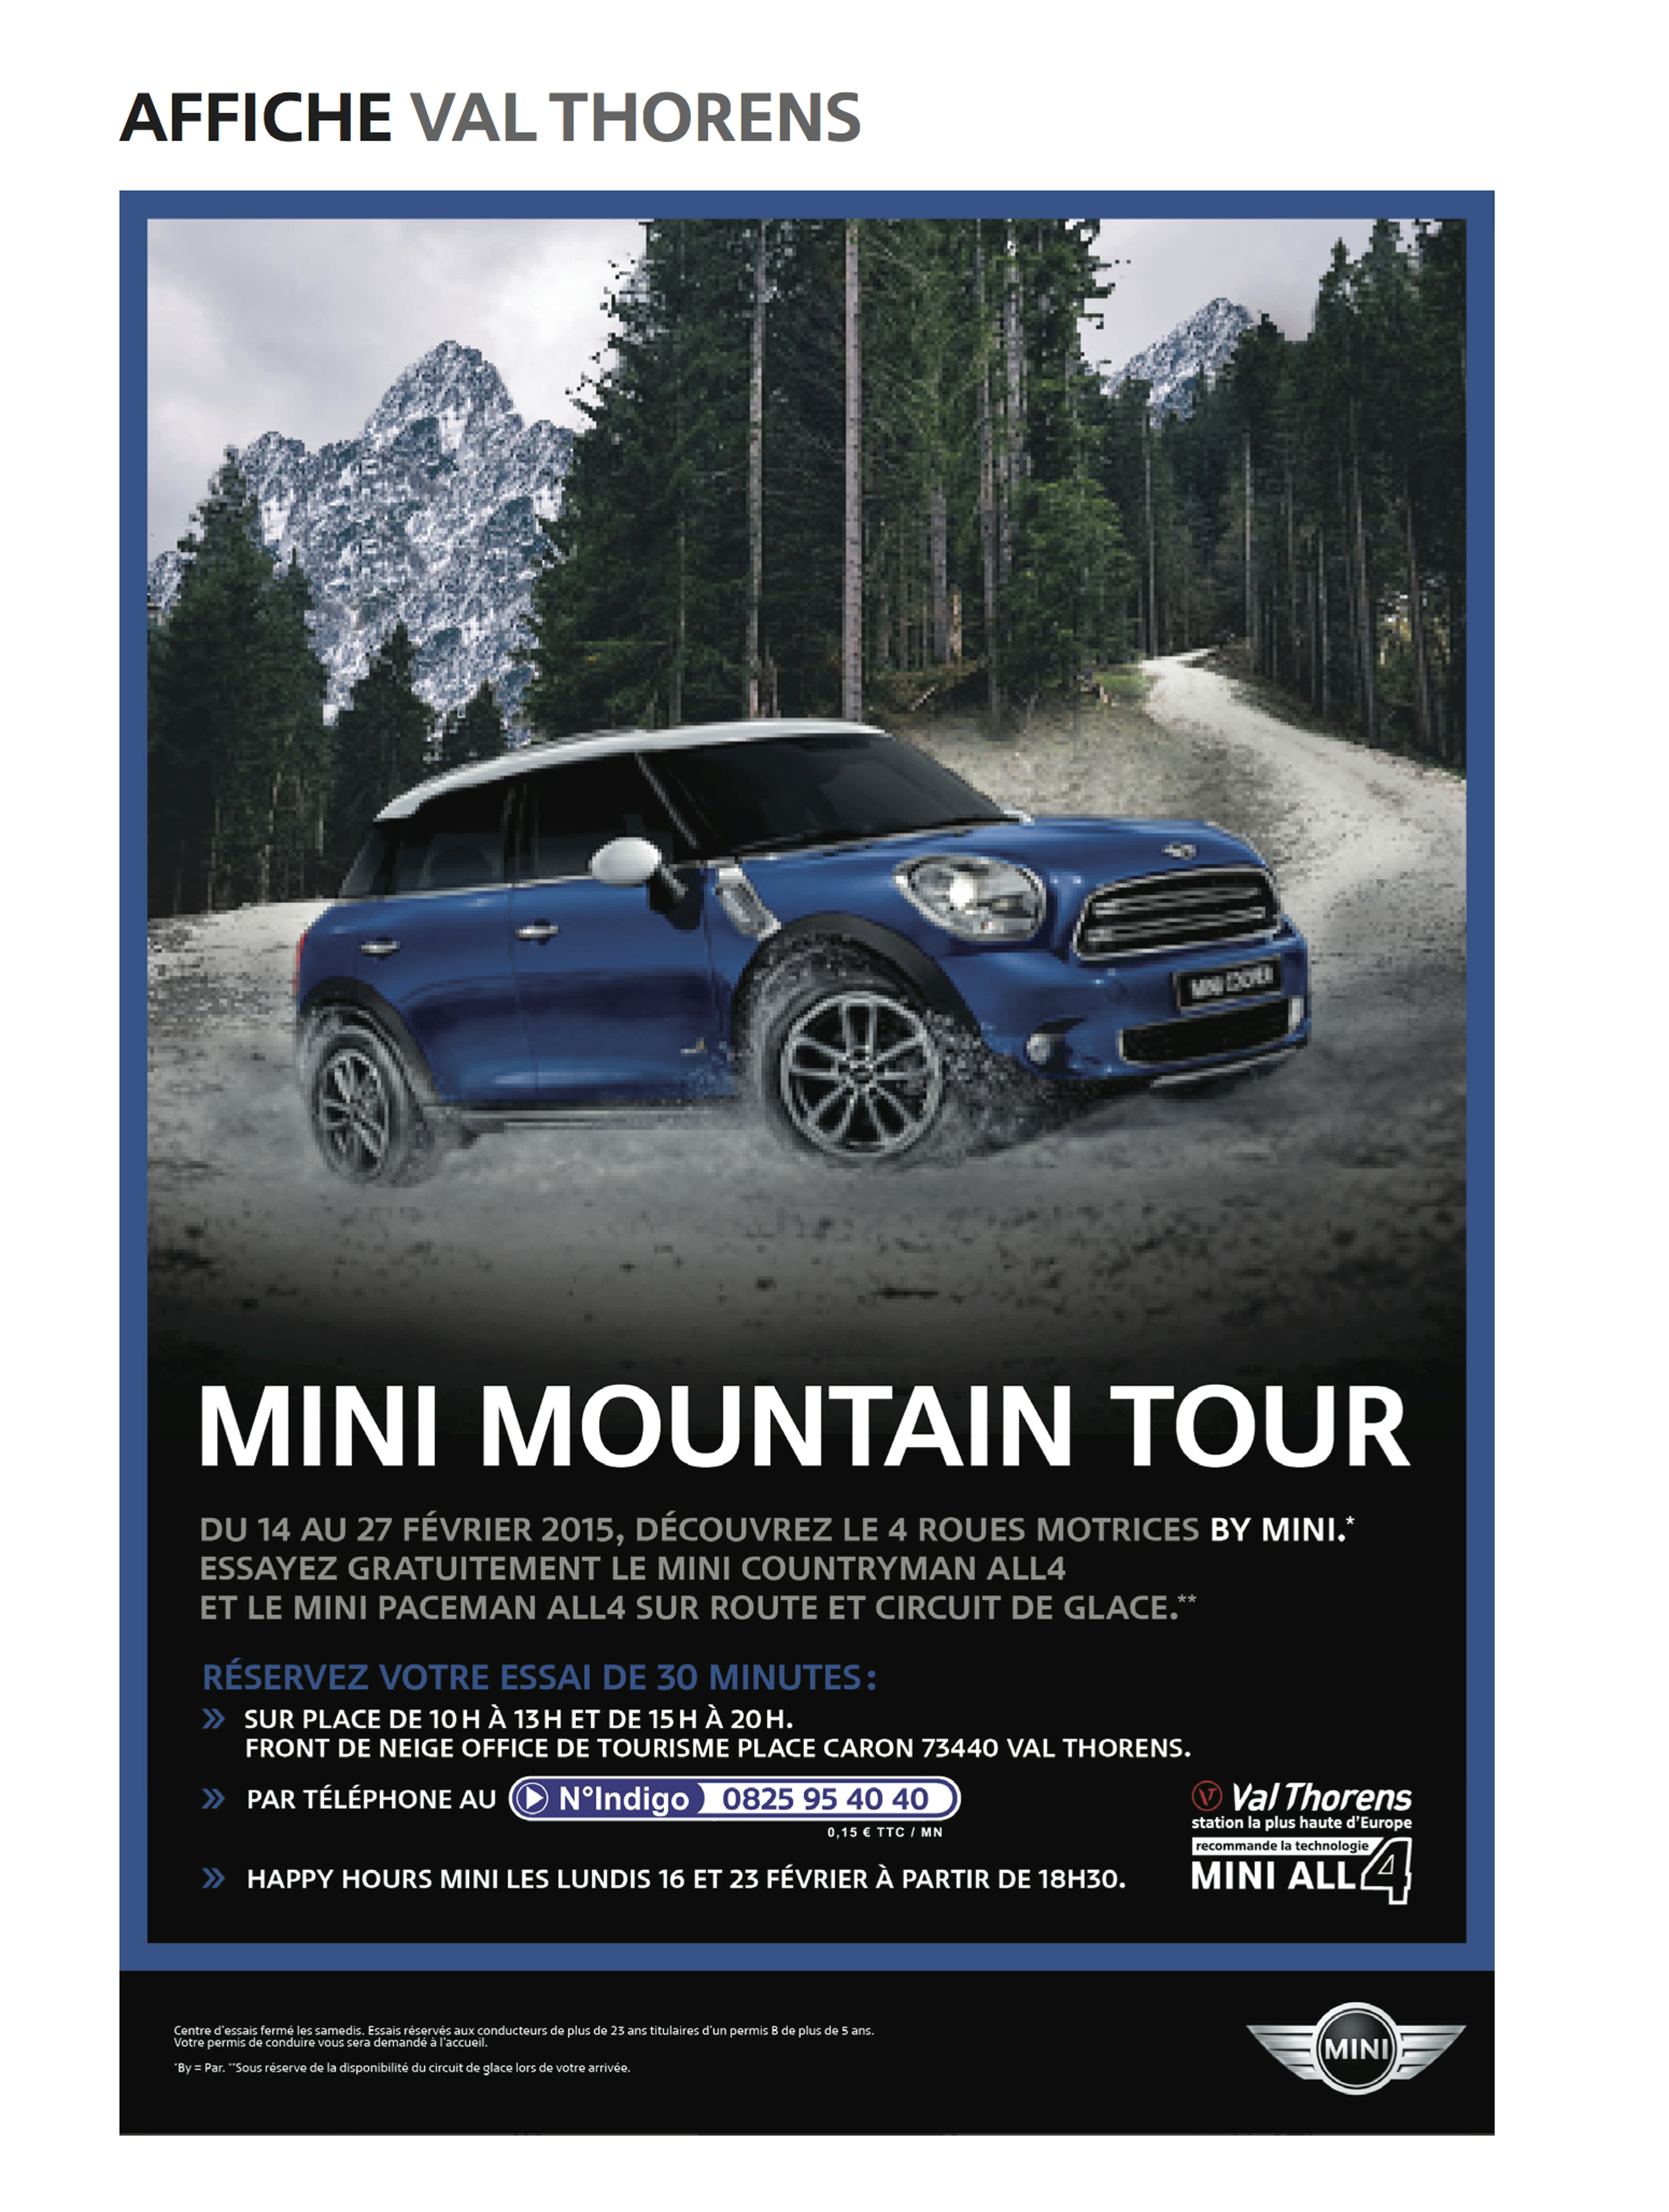 MINI MOUNTAIN TOUR maquette.jpg